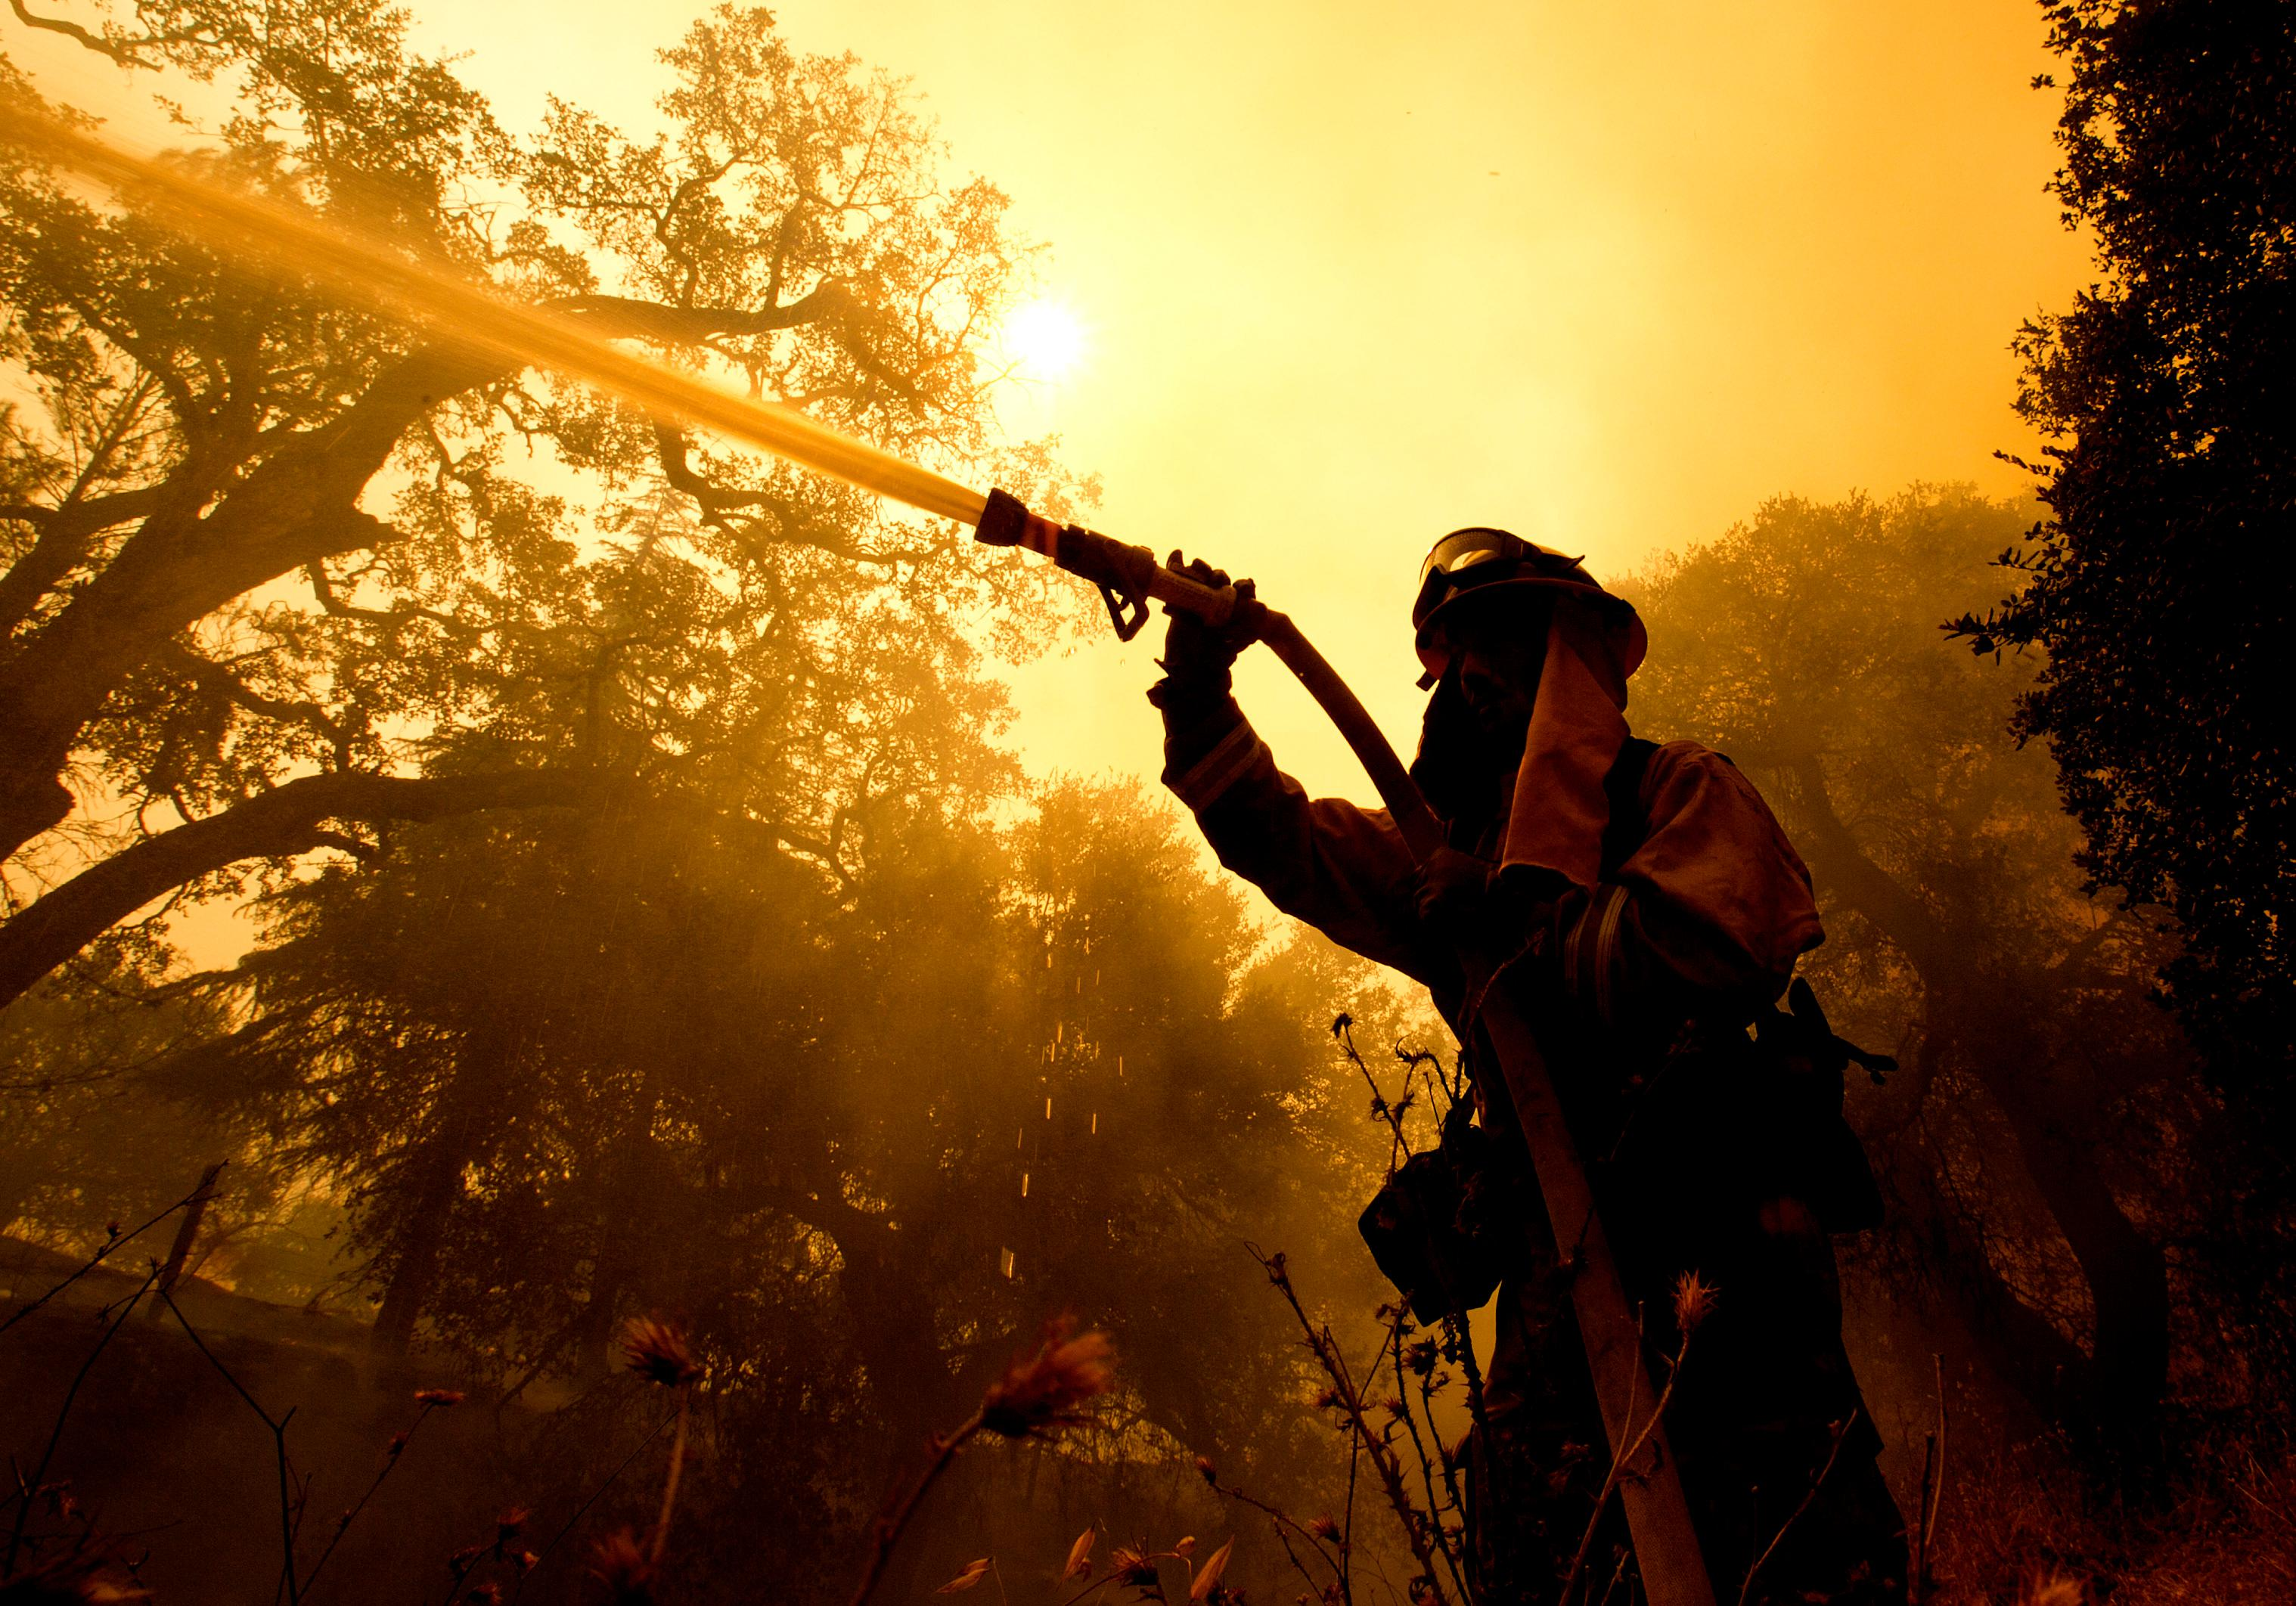 Napa County firefighter Jason Sheumann sprays water on a home as he battles flames from a wildfire Monday, Oct. 9, 2017, in Napa, Calif. Wildfires whipped by powerful winds swept through Northern California sending residents on a headlong flight to safety through smoke and flames as homes burned. (AP Photo/Rich Pedroncelli)